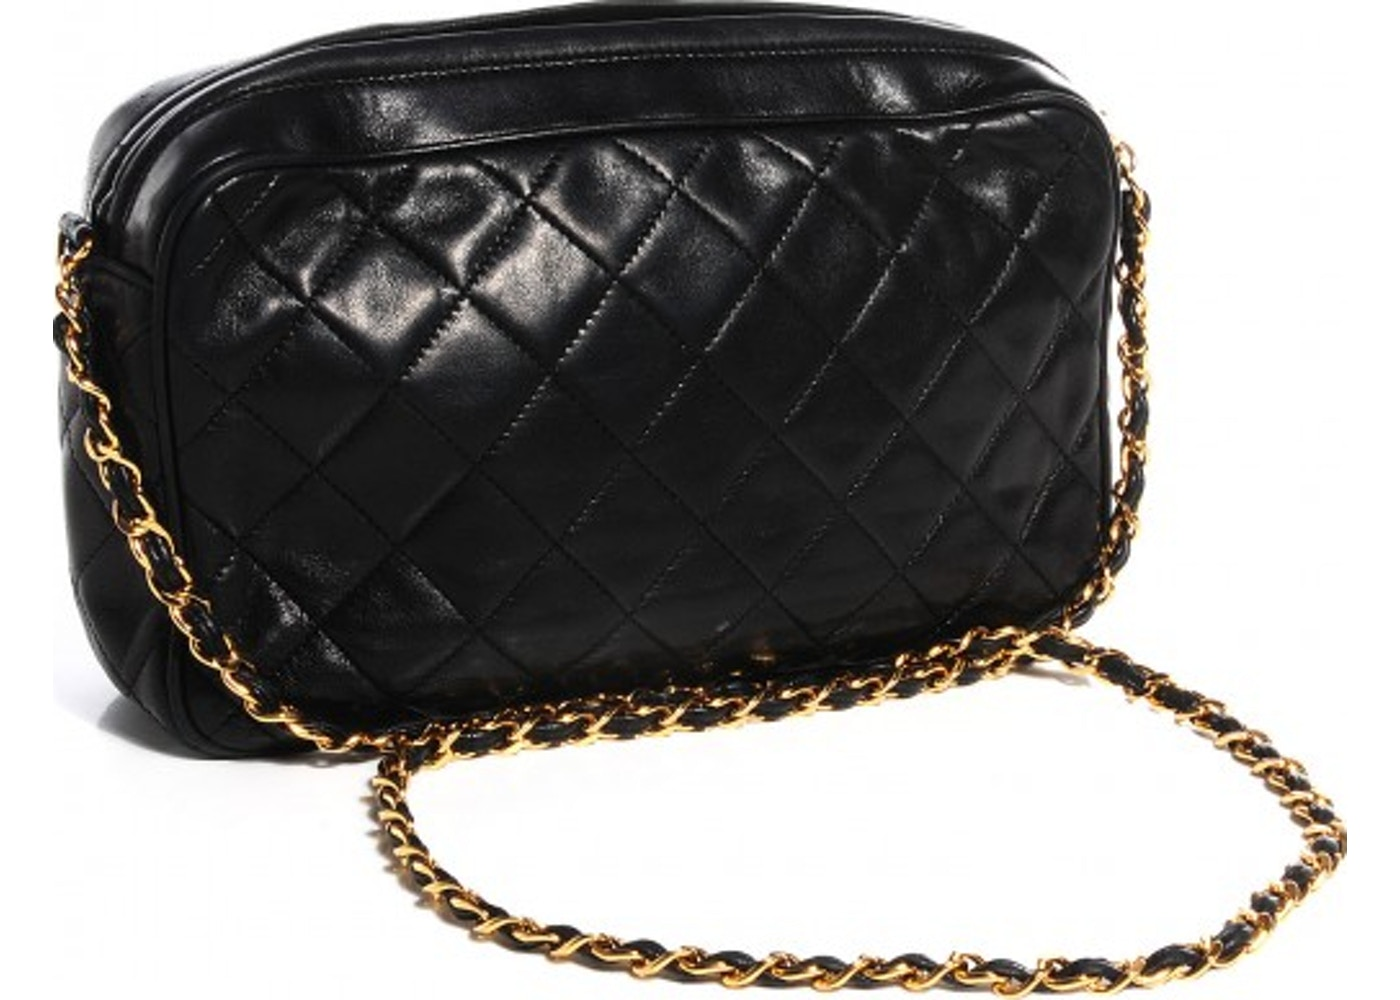 d96174a7f604 Chanel CC Vintage Camera Bag Quilted Black